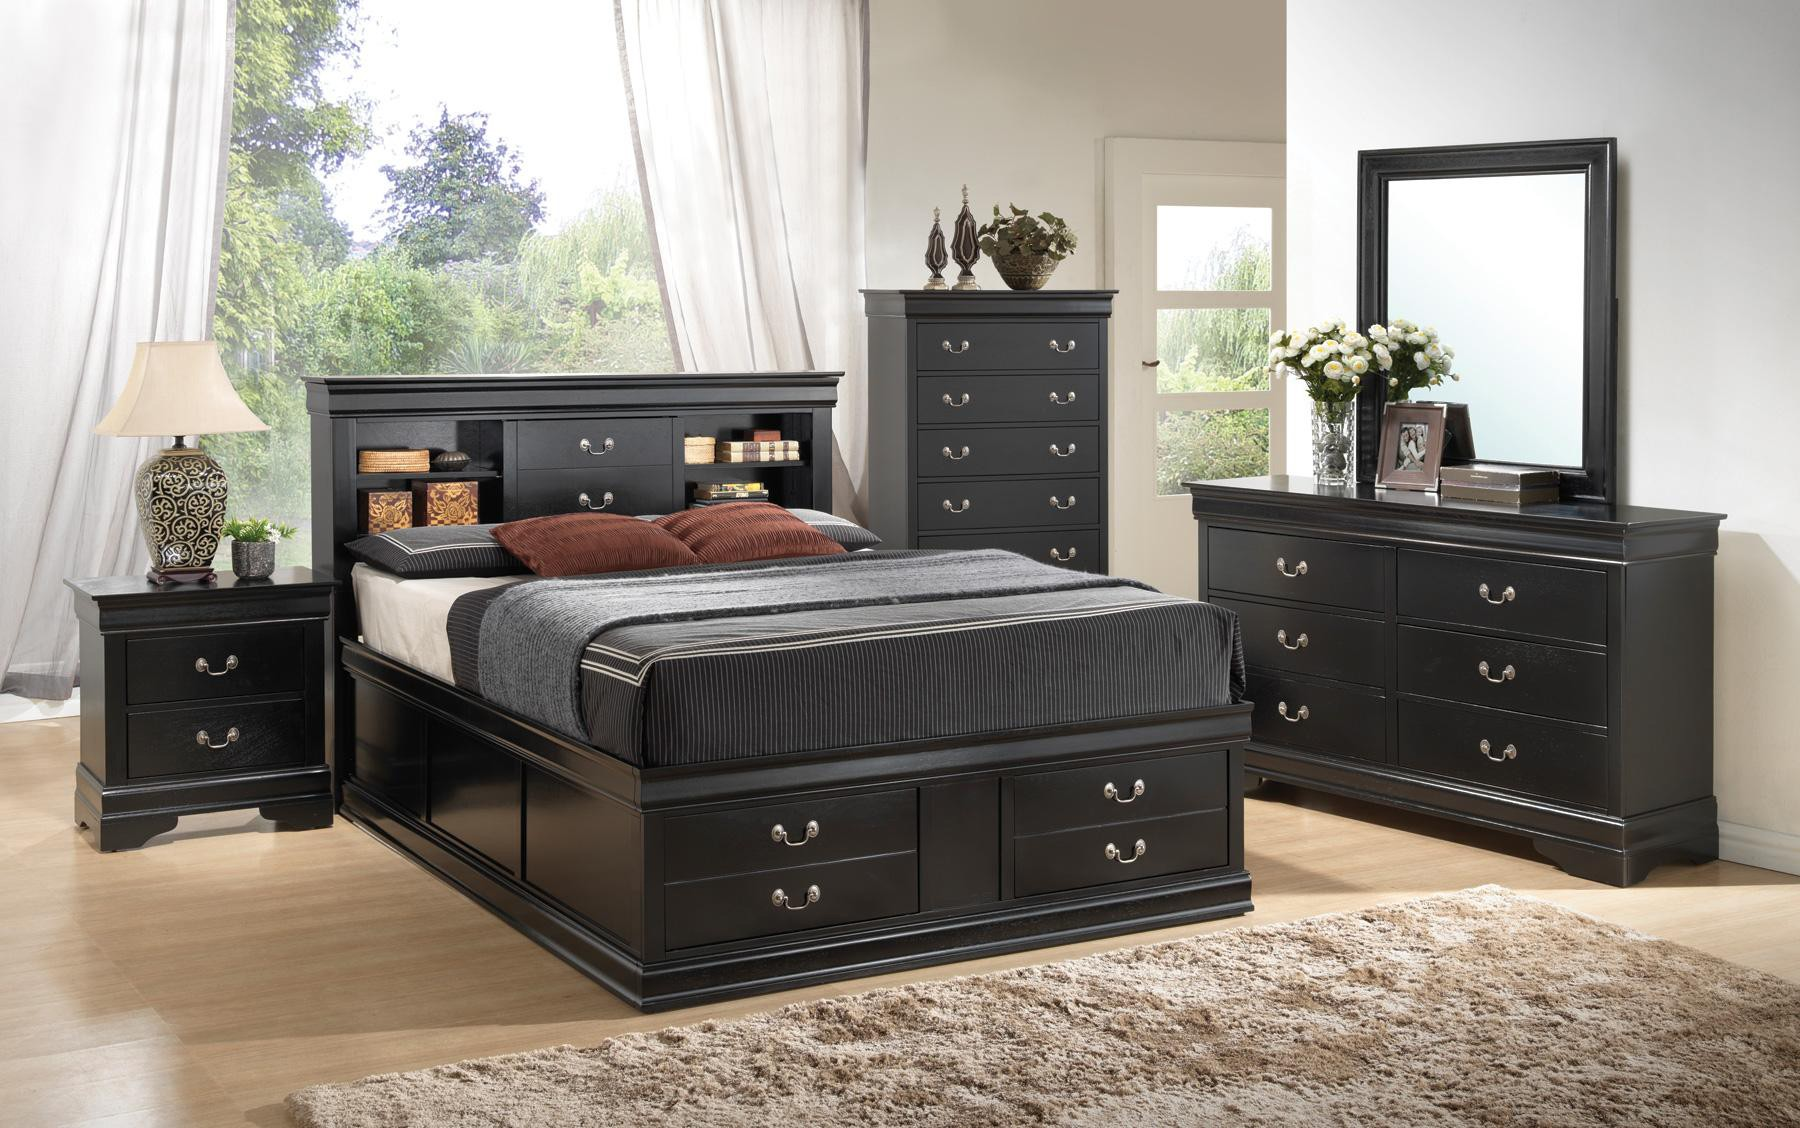 Coaster Louis Philippe Black Queen 5pc Storage Bedroom Set Dallas Tx Bedroom Group Furniture